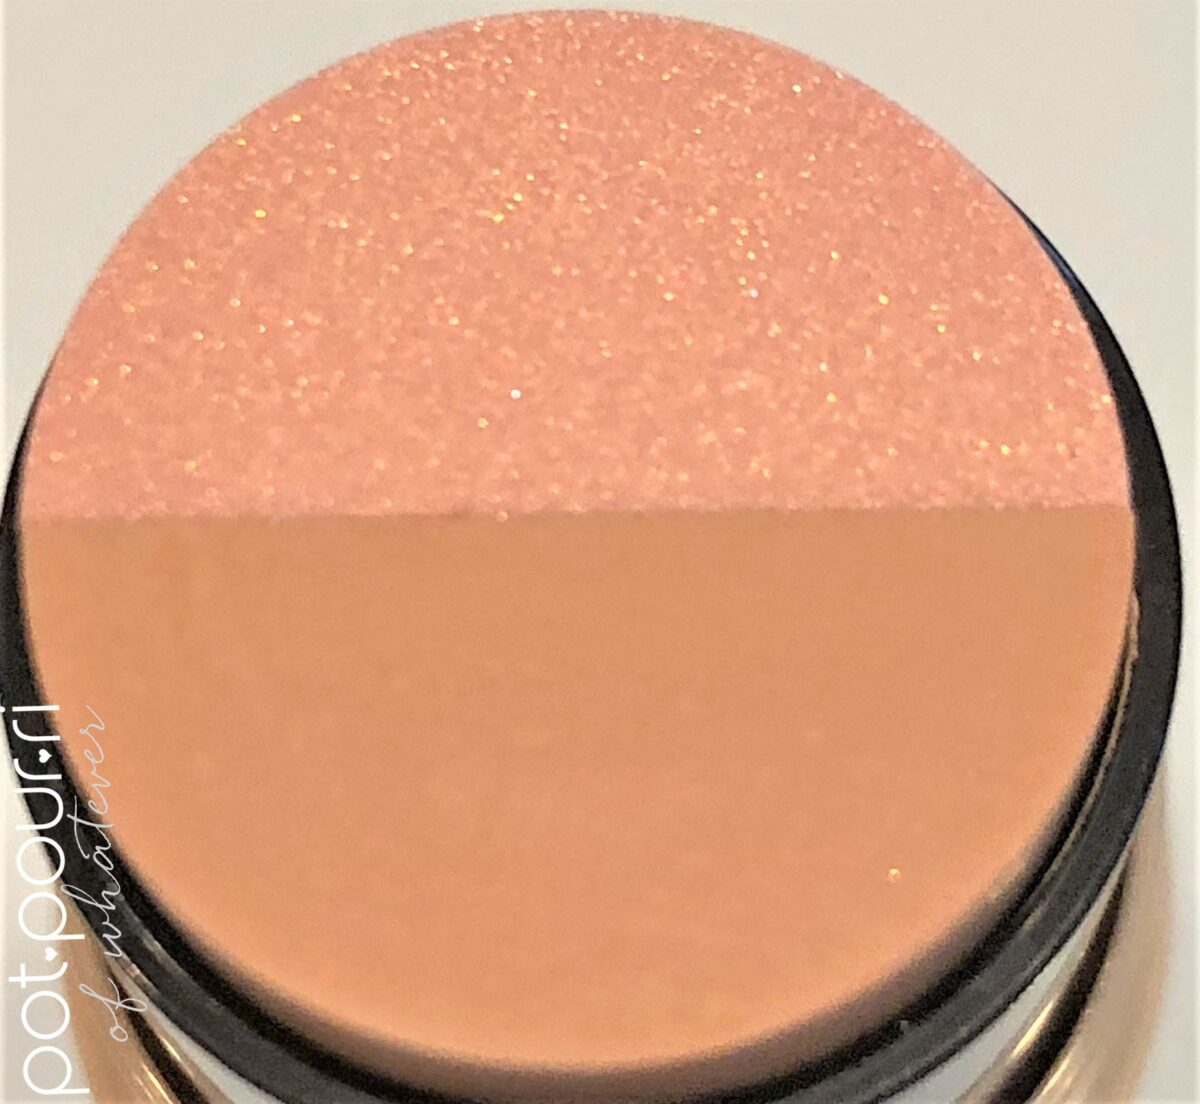 PEACH BEIGE EXPERT DUO STICK